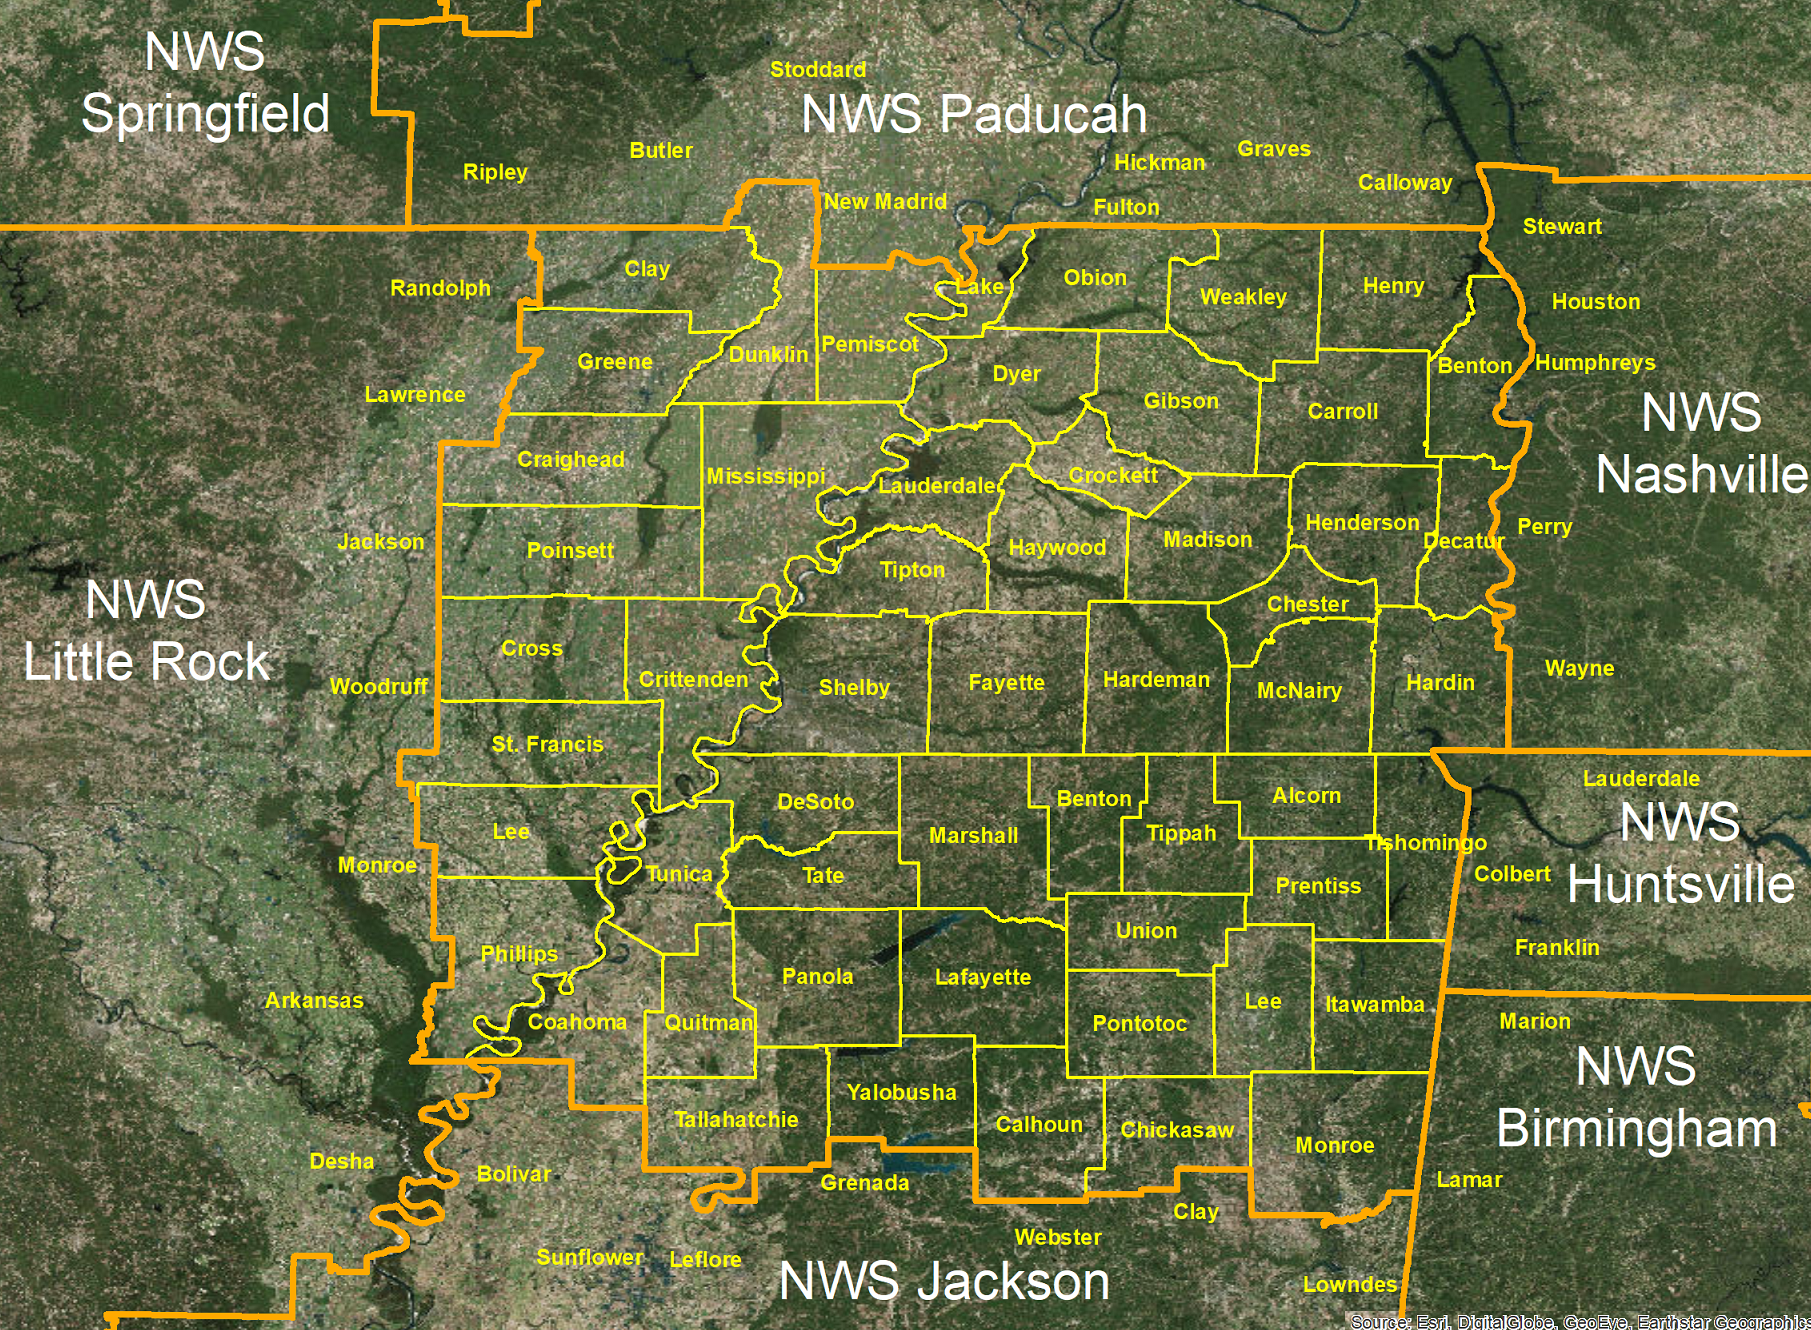 NWS Memphis County Warning and Forecast Area - Click to Enlarge